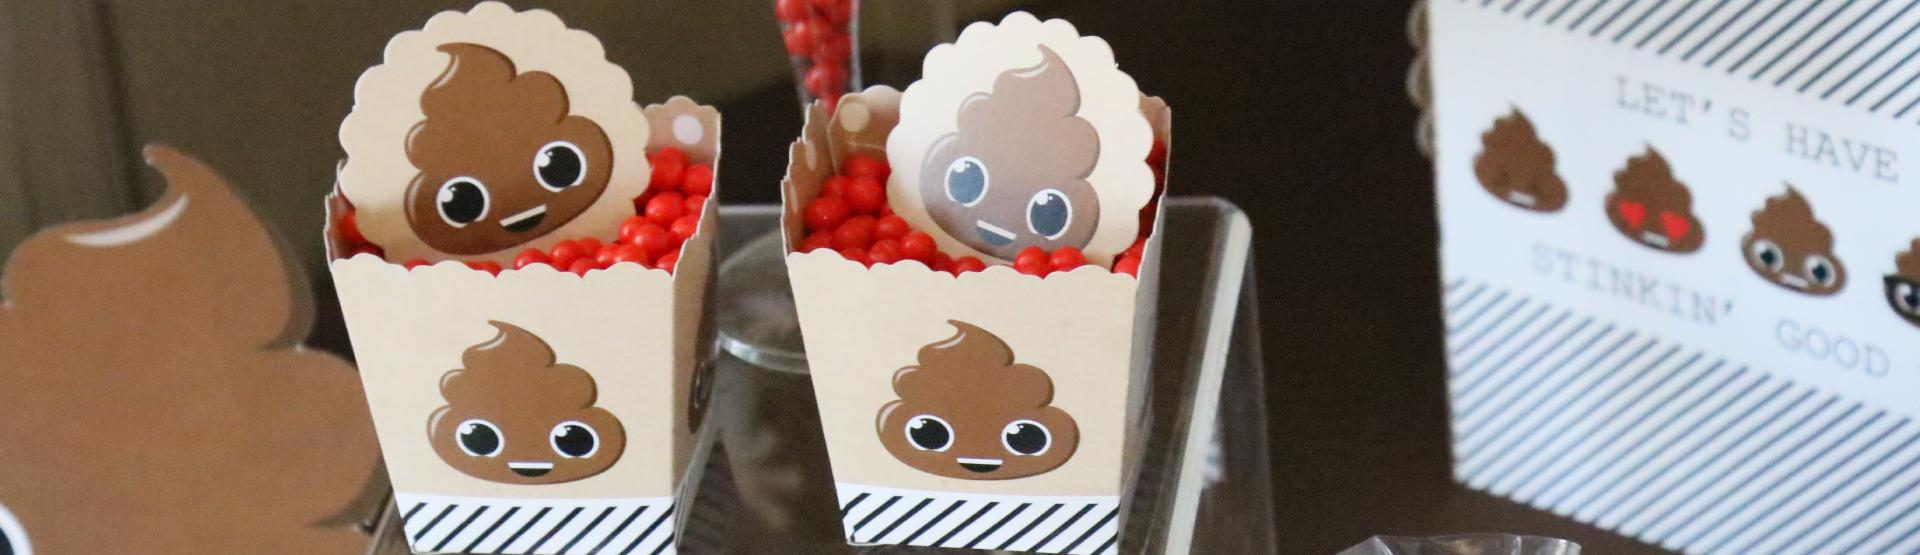 Party Til You're Pooped - Poop Emoji Party ideas